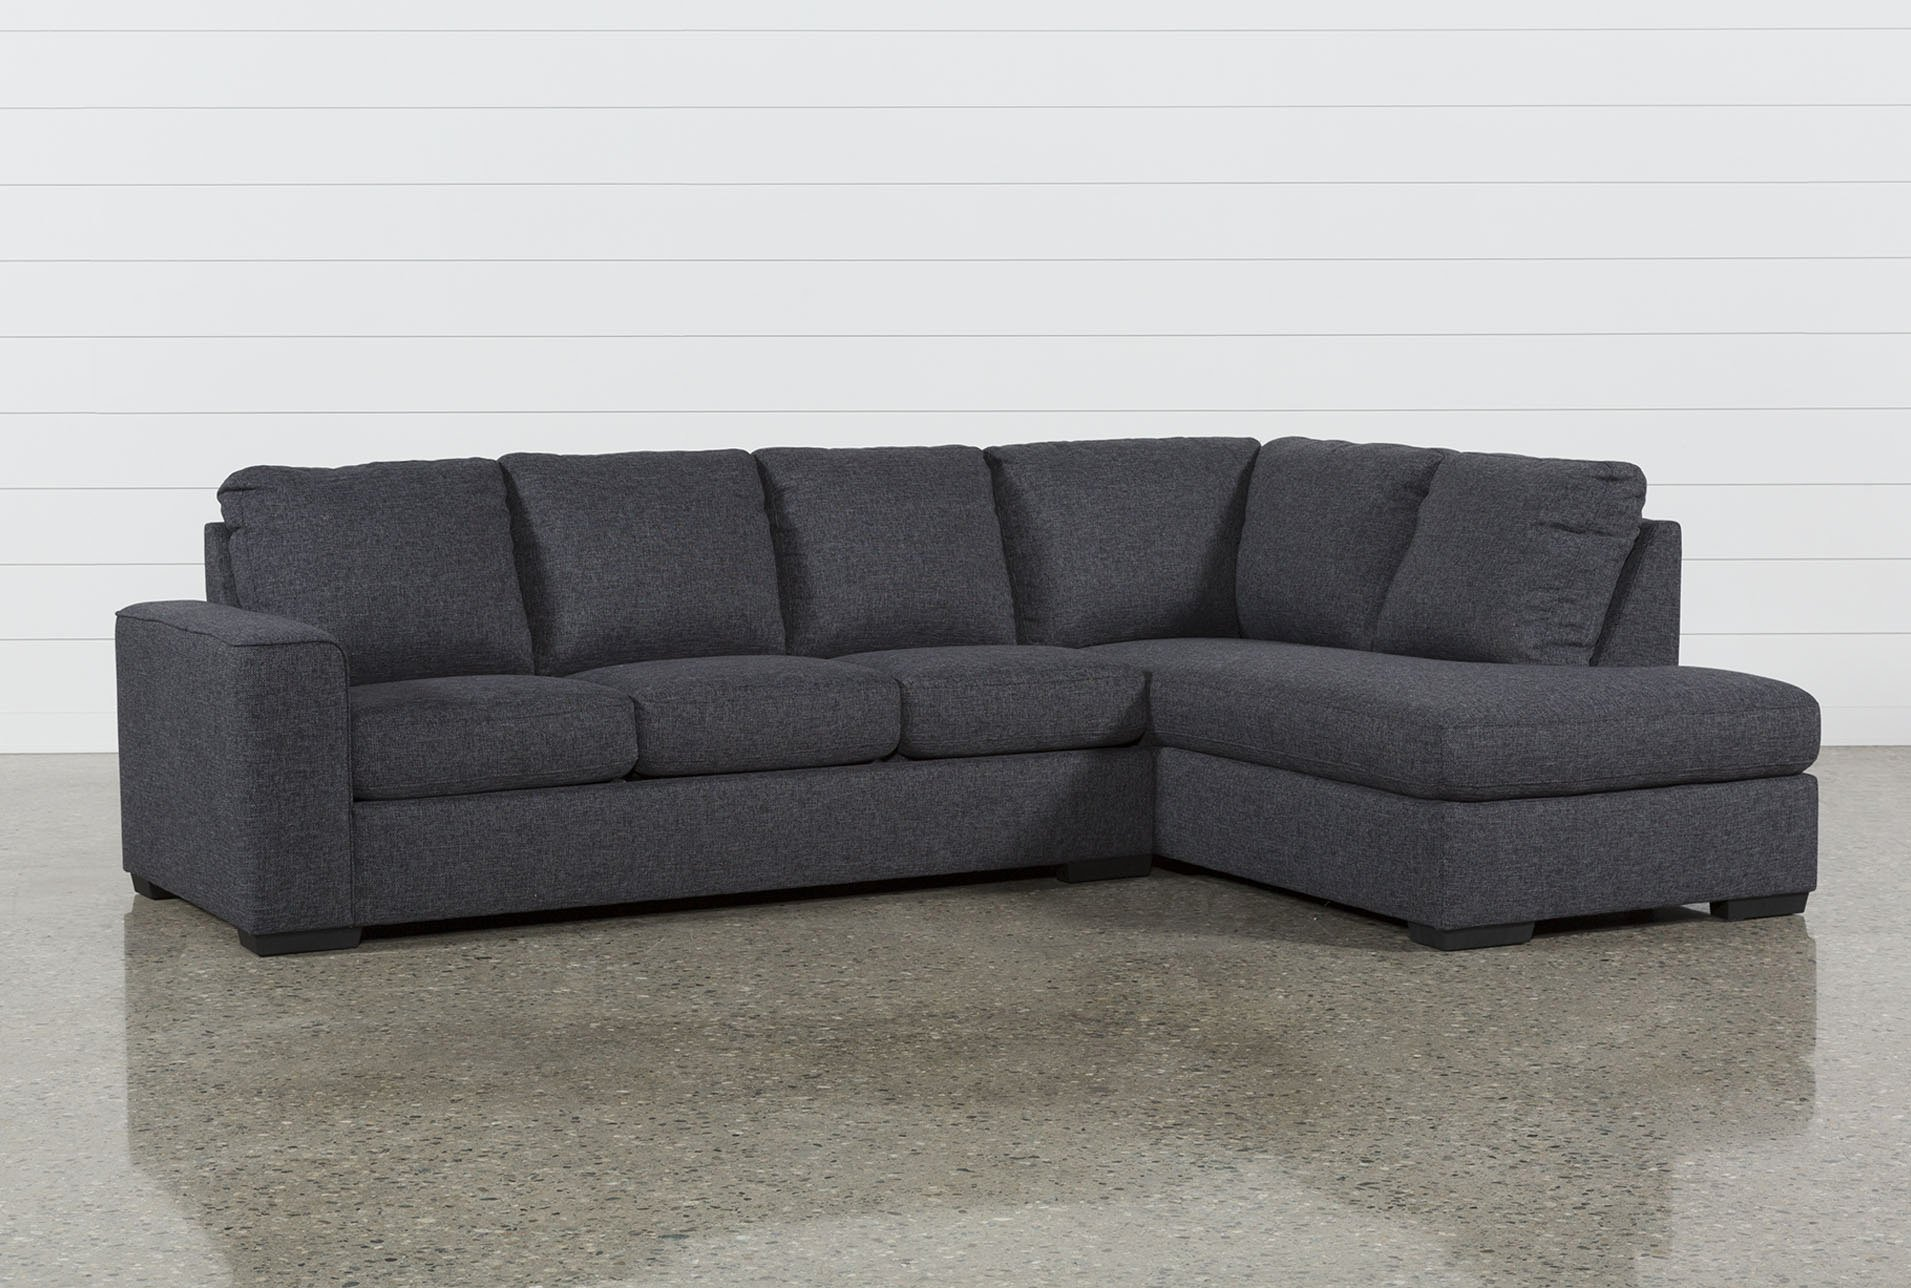 Sofa Sectional Sleeper